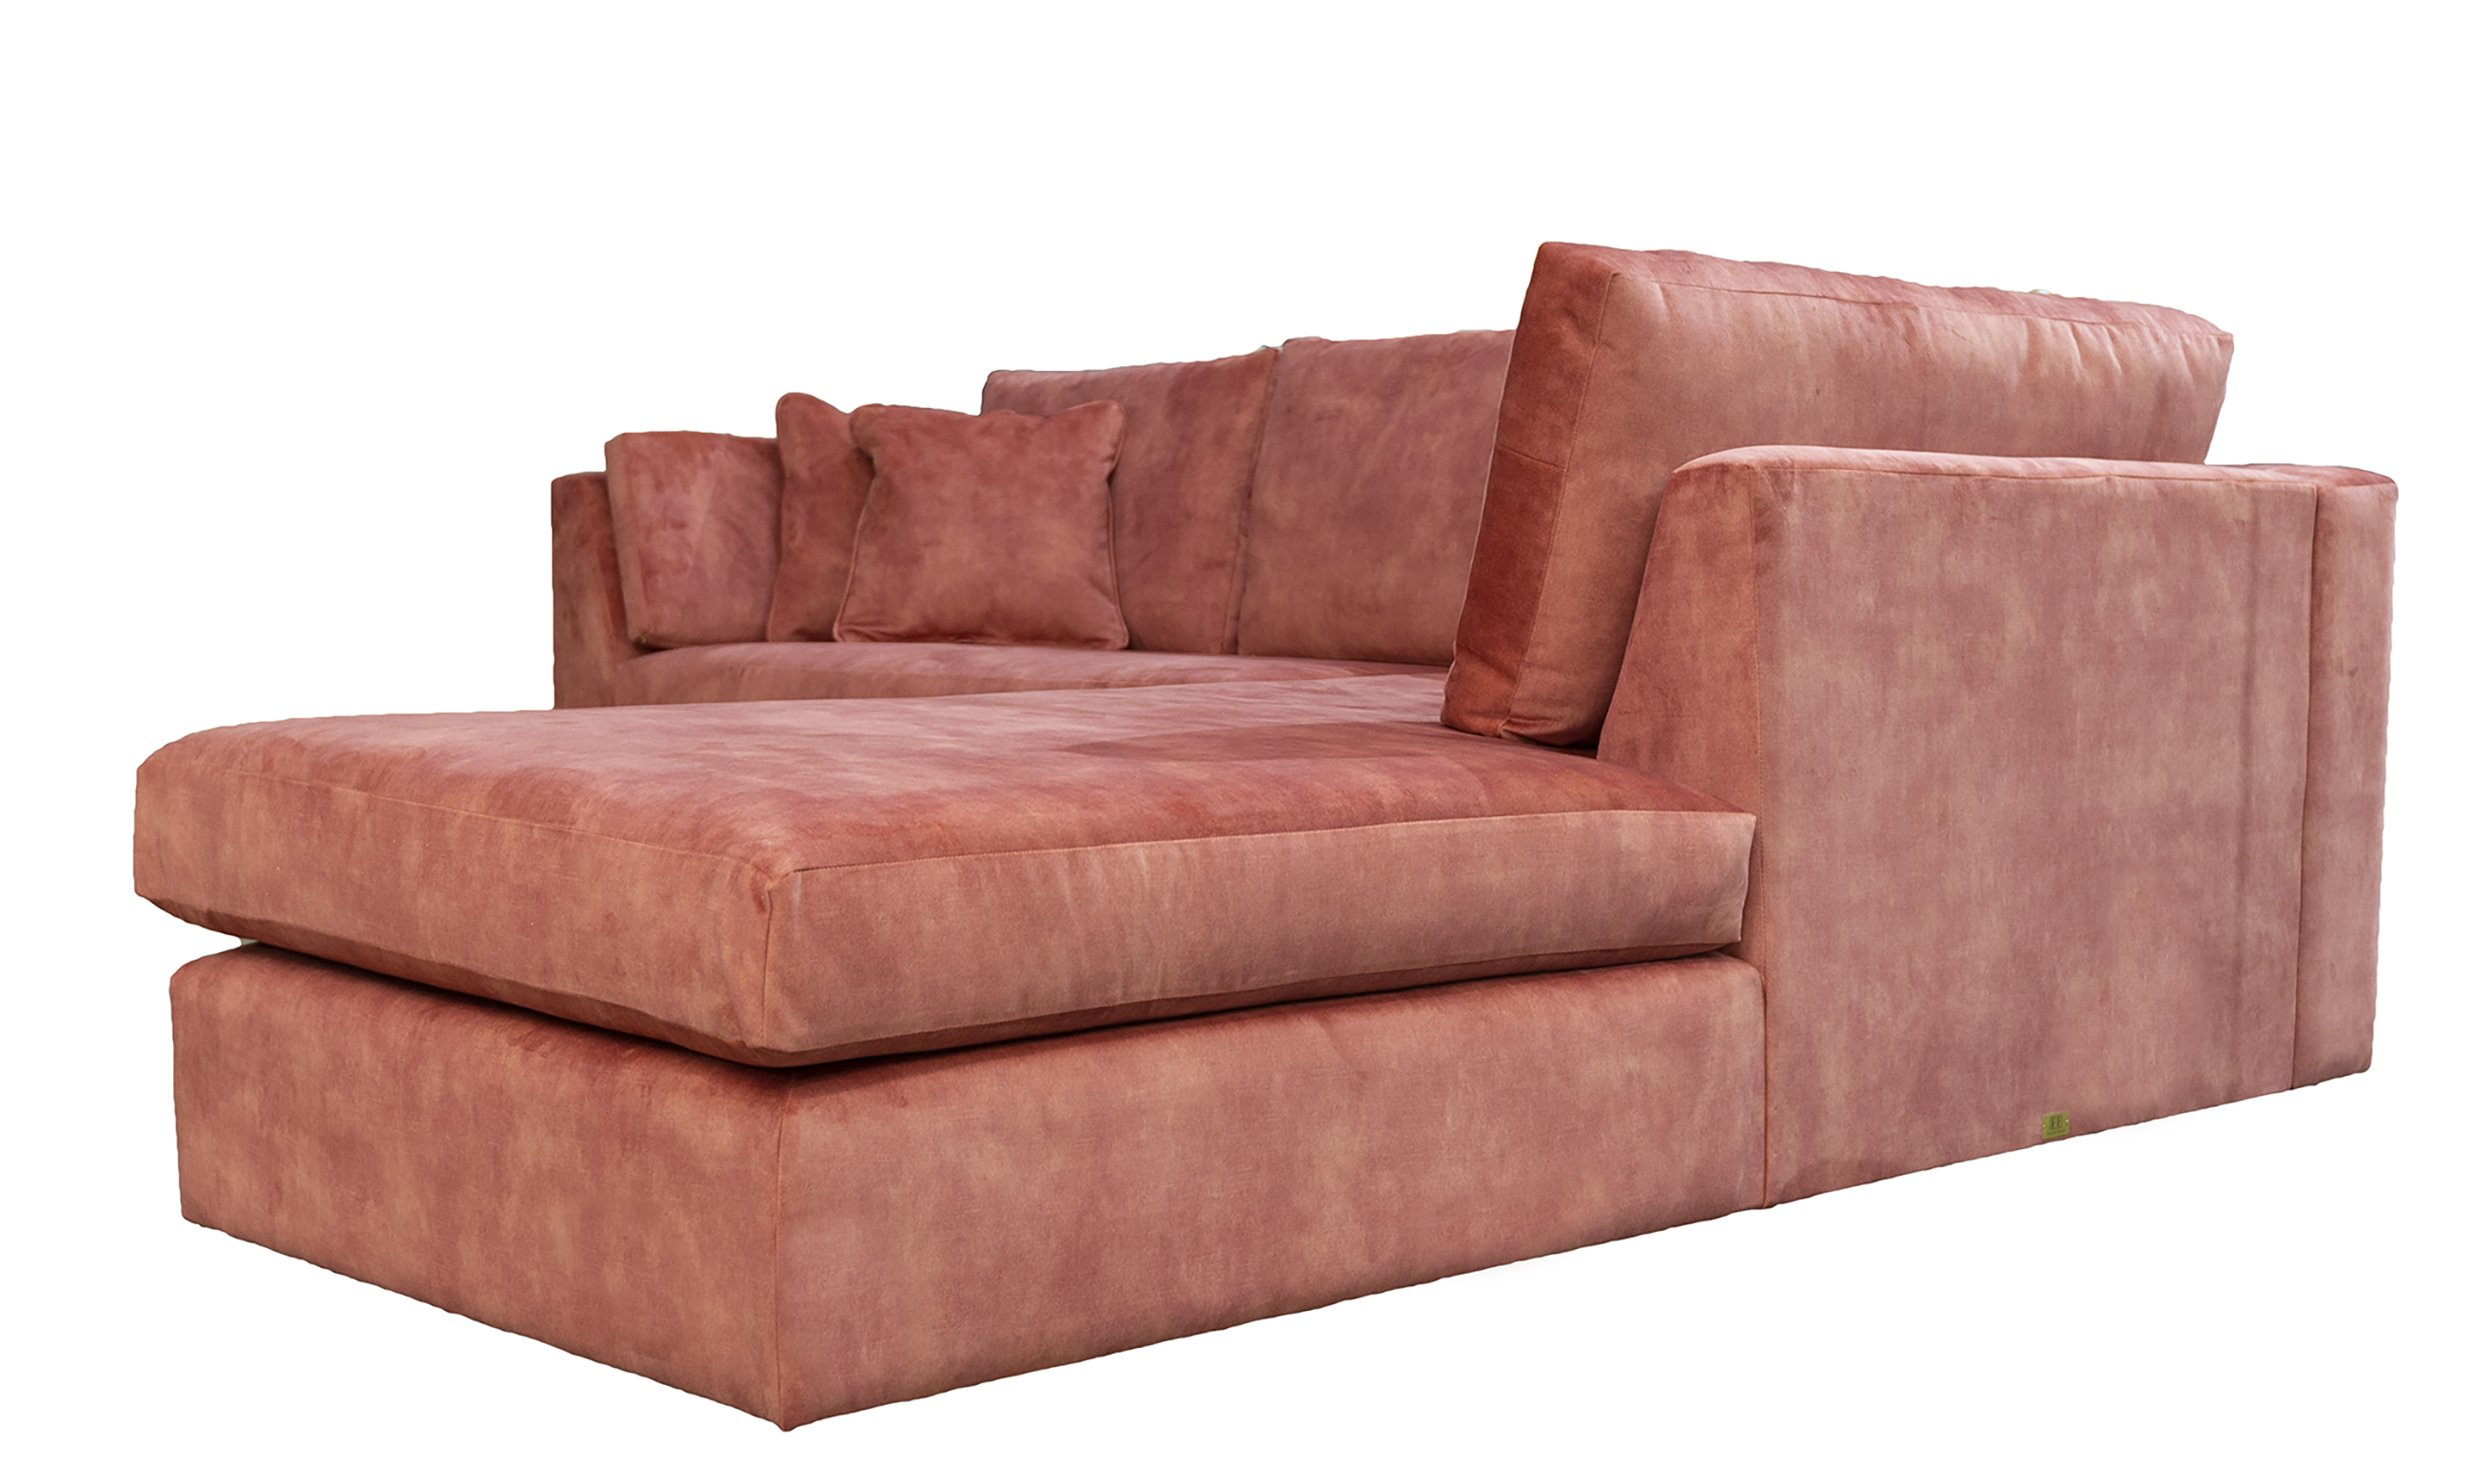 1_Como-Chaise-Sofa-Side-in-Lovely-Coral-Gold-Collection-Fabric